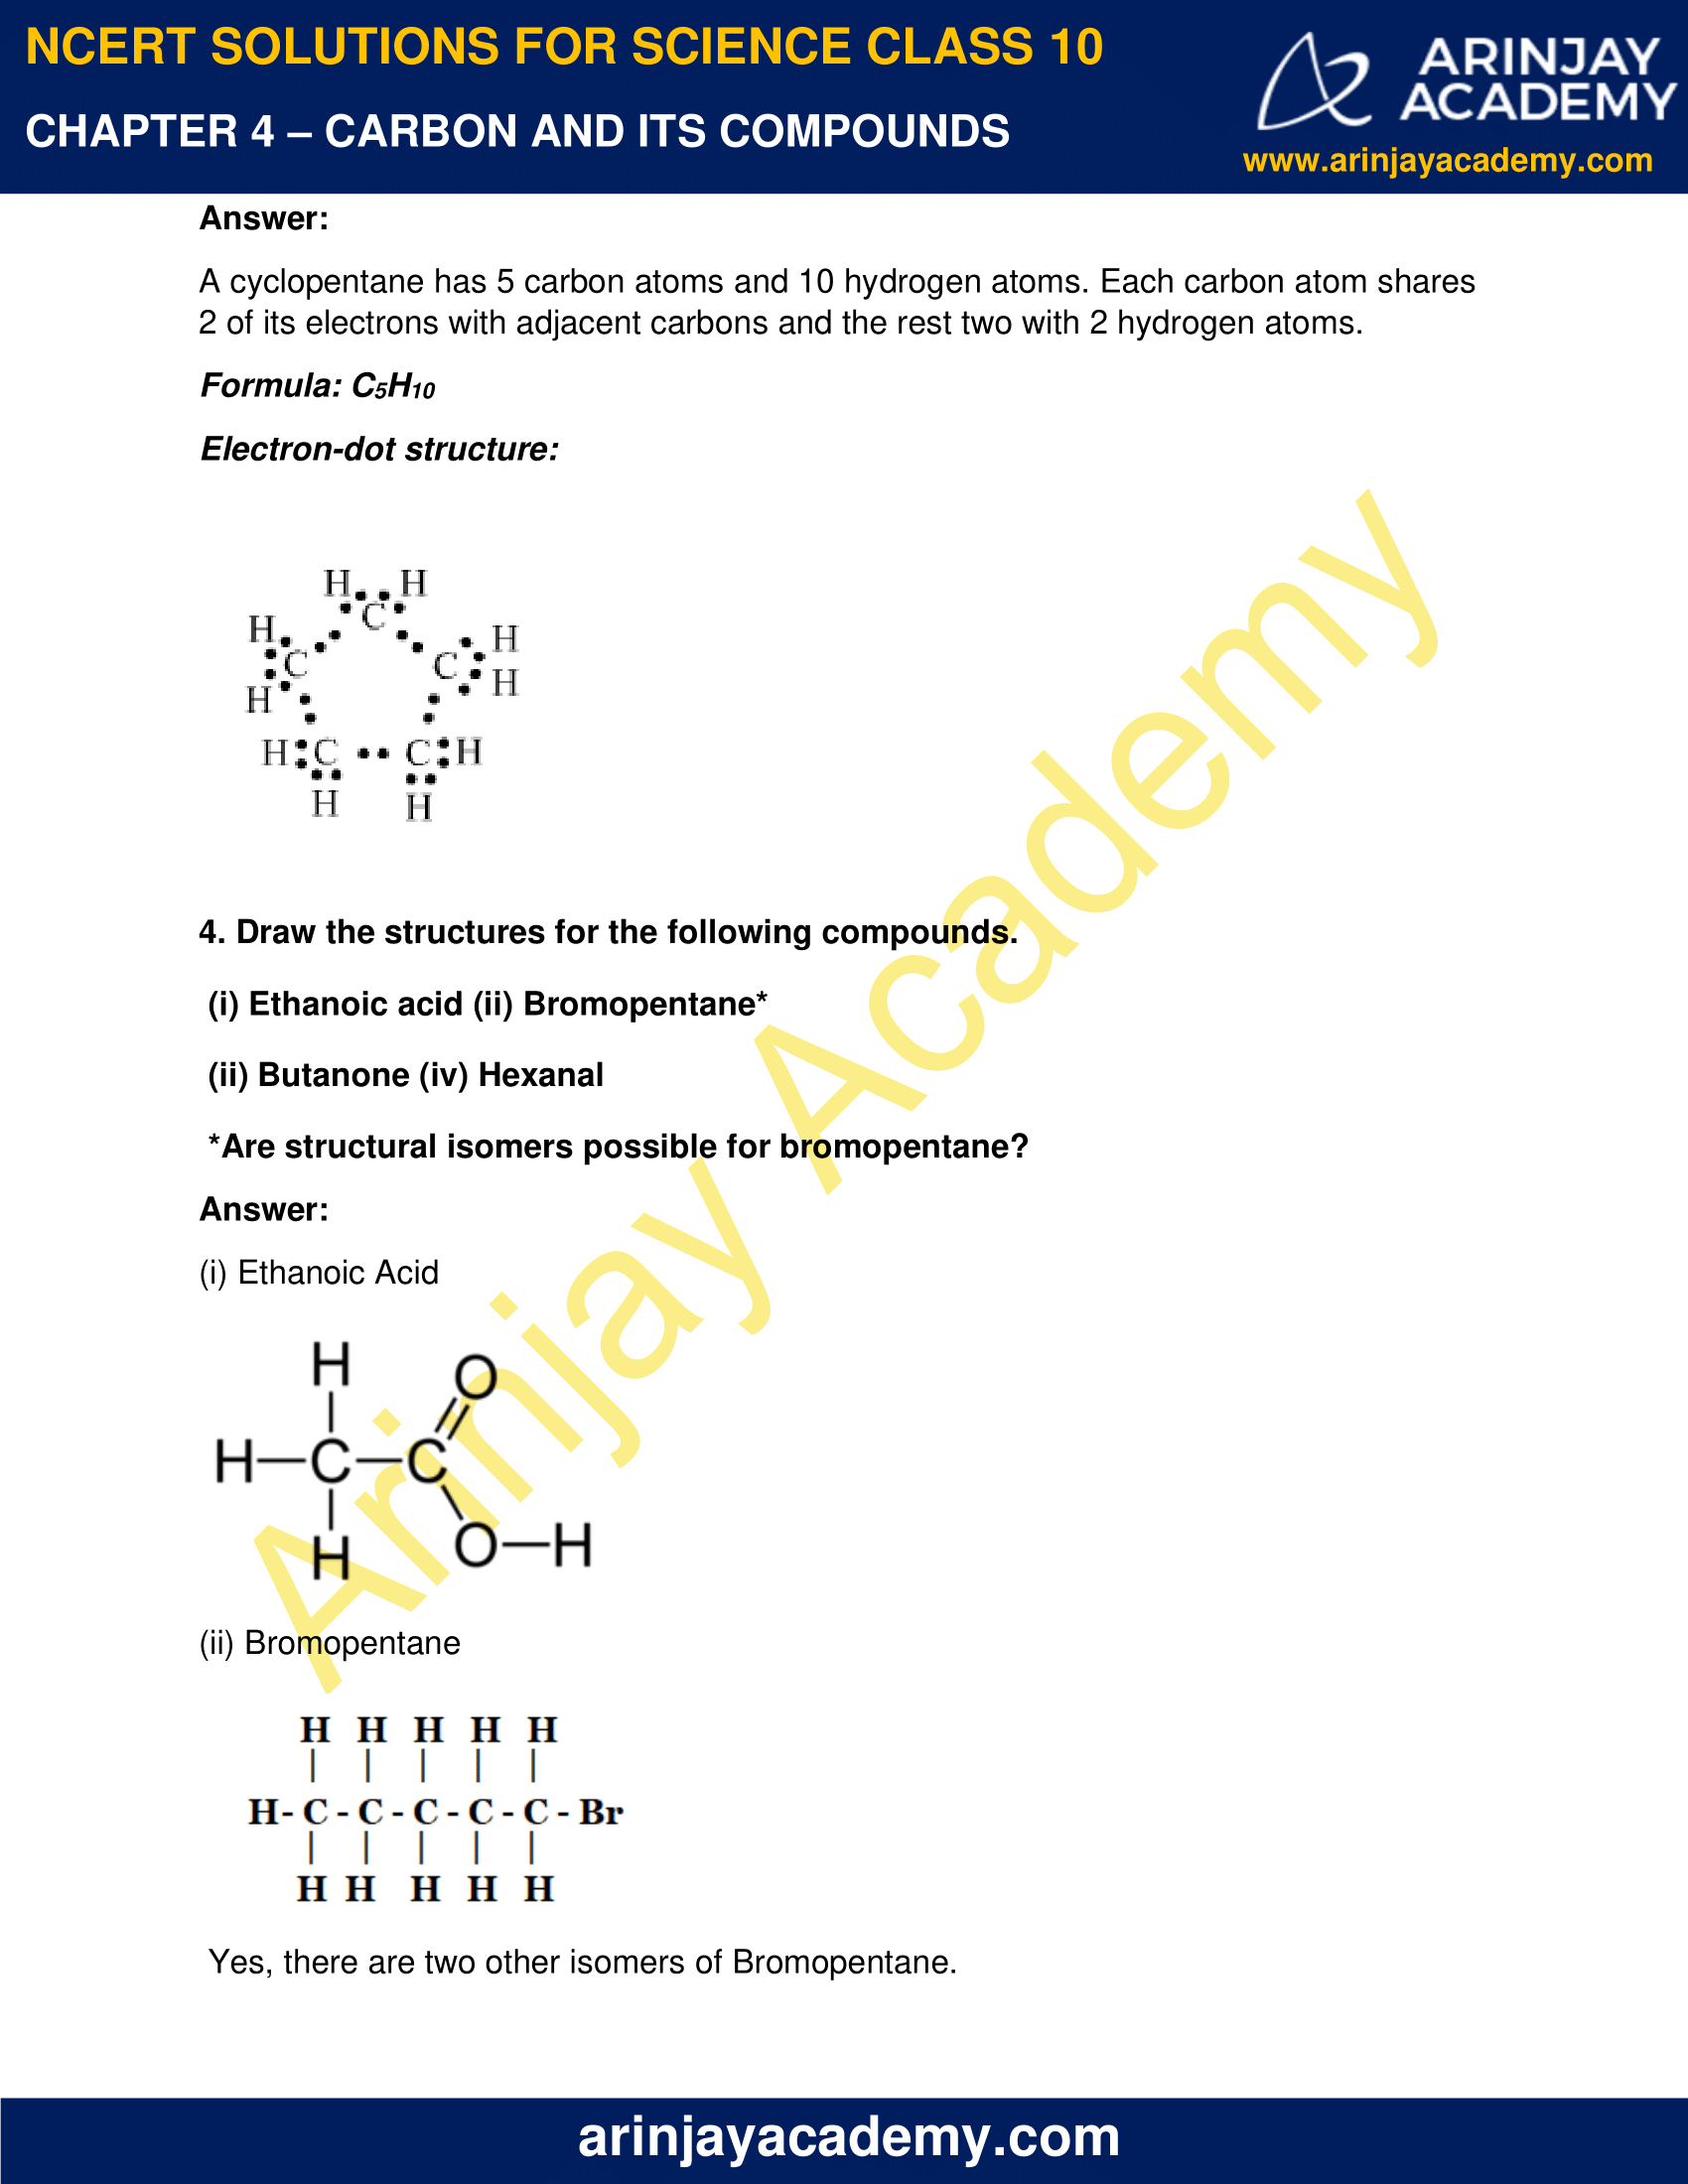 NCERT Solutions for Class 10 Science Chapter 4 image 3